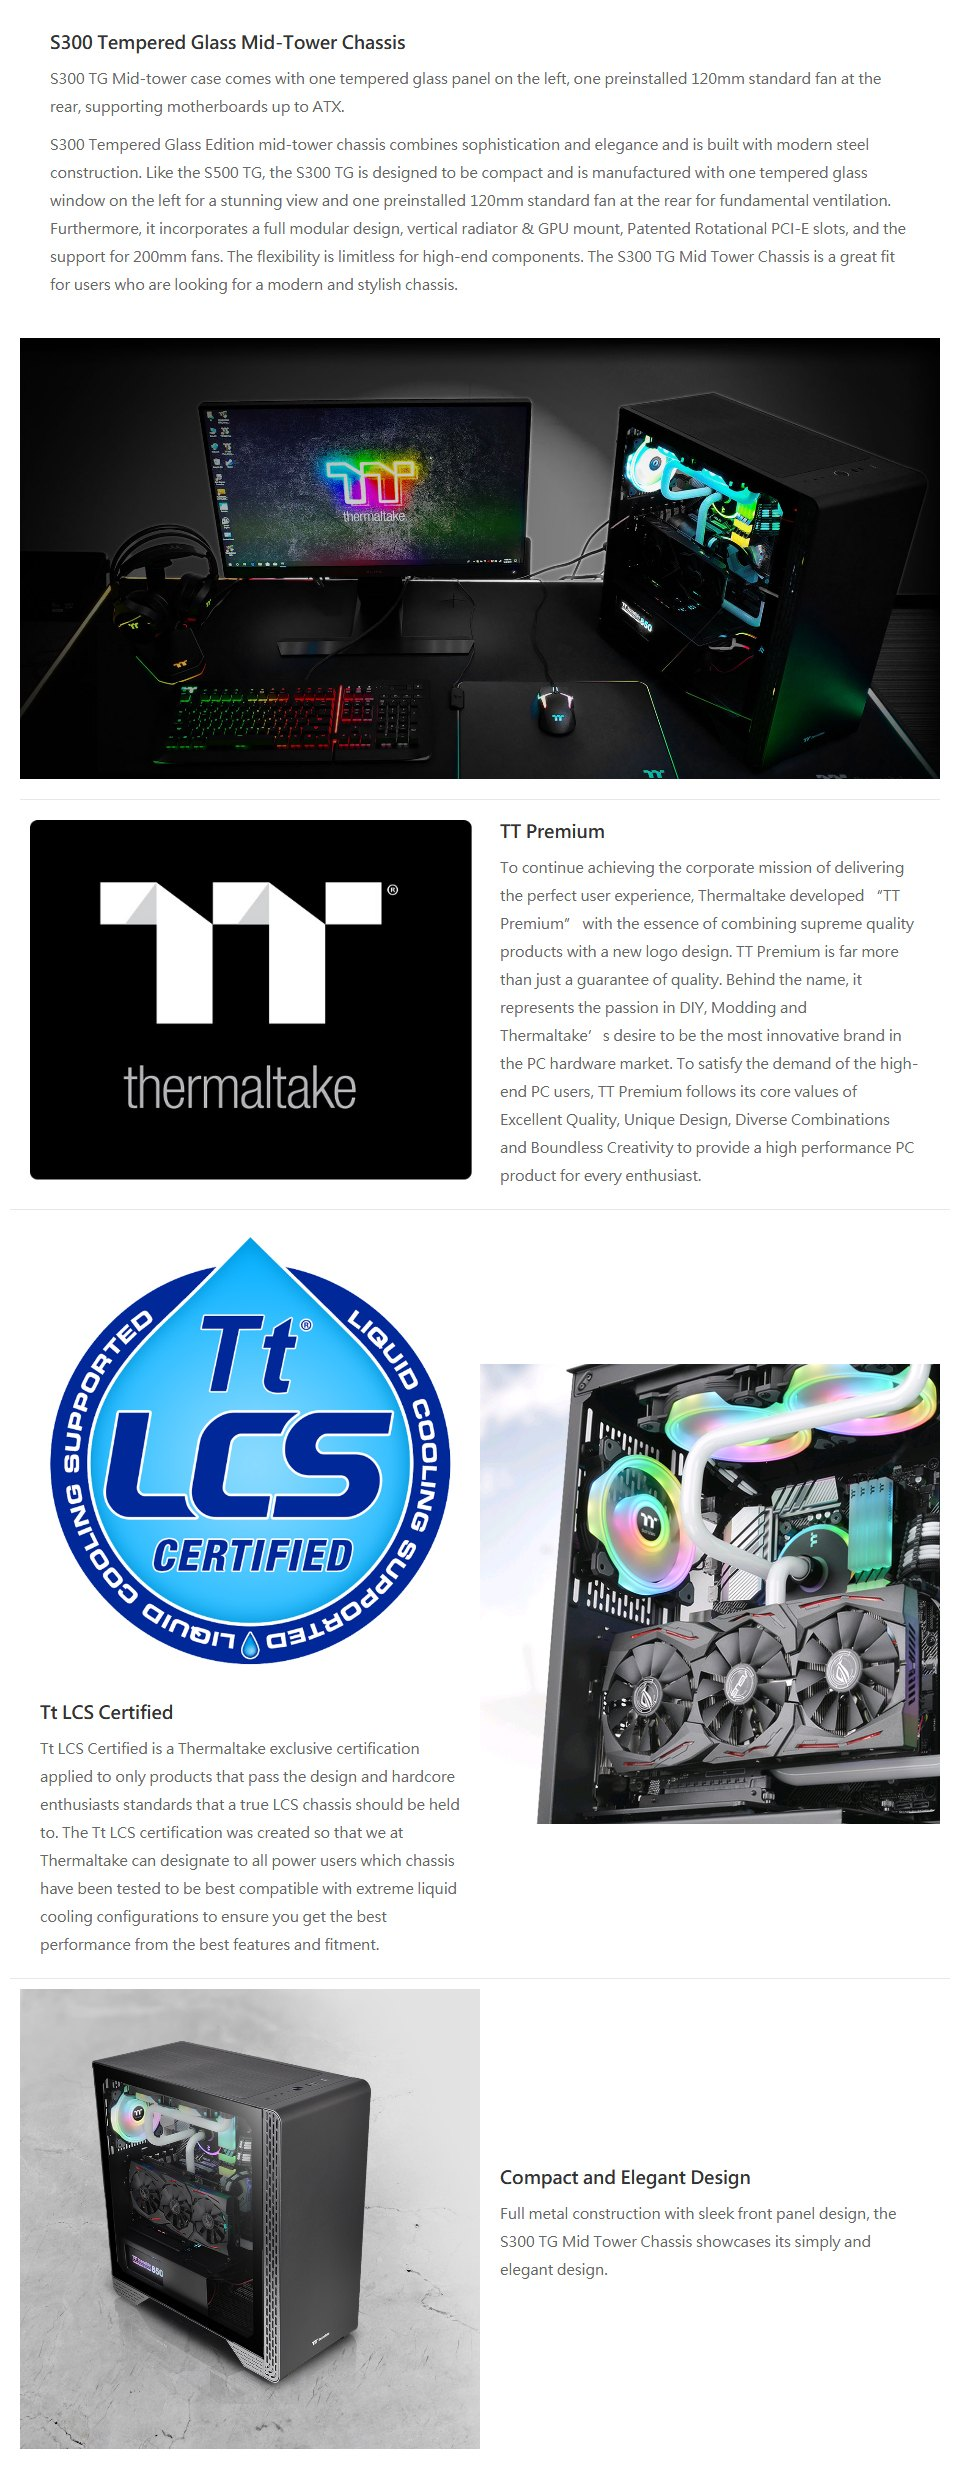 Thermaltake S300 Tempered Glass Mid-Tower Case Snow Edition features